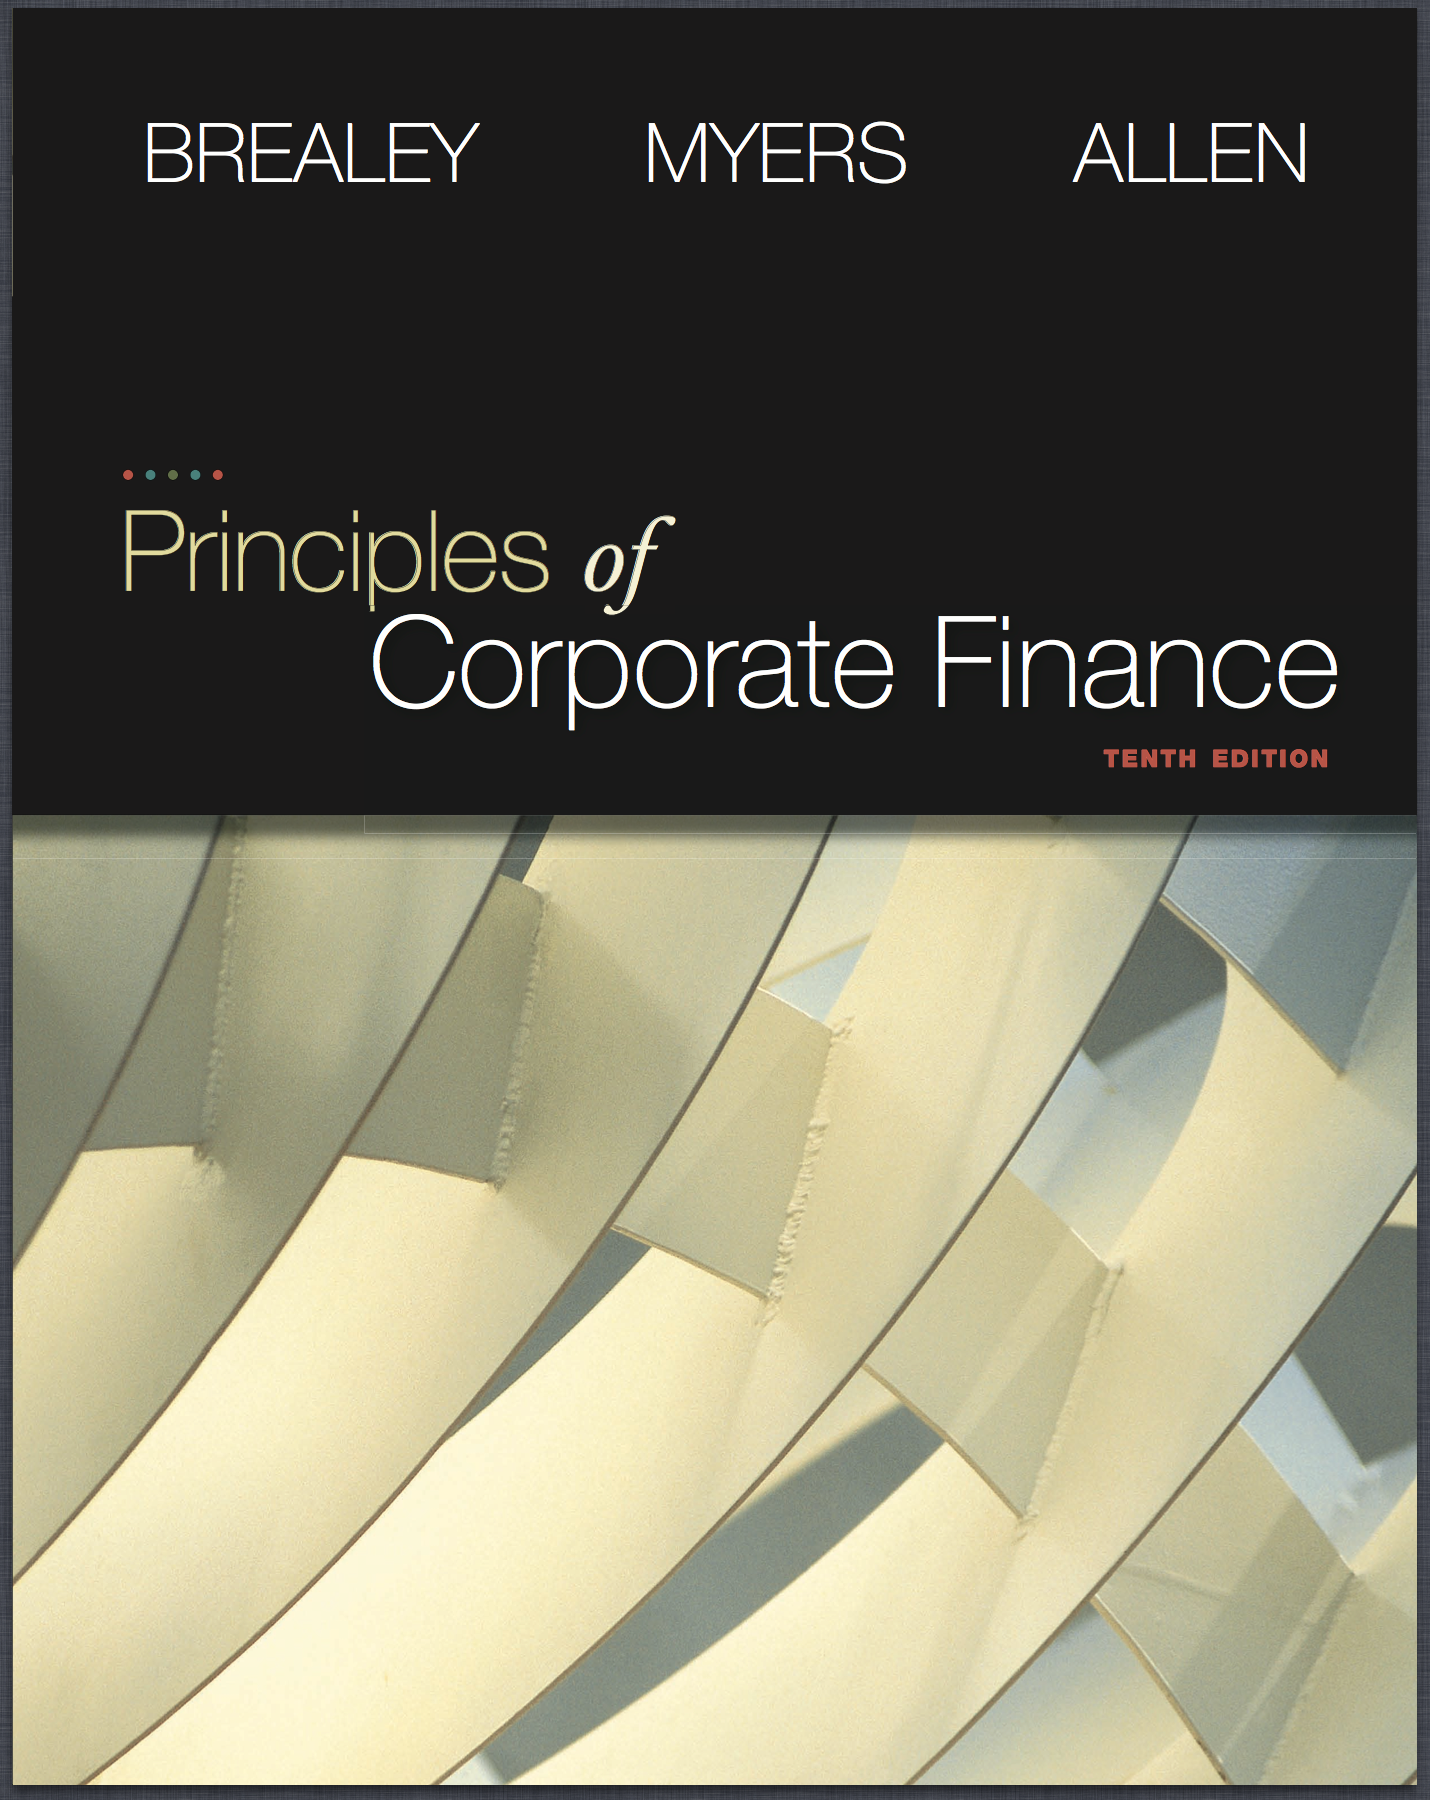 solutions to chapter 17 leasing brealey myers corporate finance Solutions to chapter 26 (leasing)-brealey myers corporate finance essays: over 180,000 solutions to chapter 26 (leasing)-brealey myers corporate finance essays, solutions to chapter 26 (leasing)-brealey myers corporate finance term papers, solutions to chapter 26 (leasing)-brealey myers.